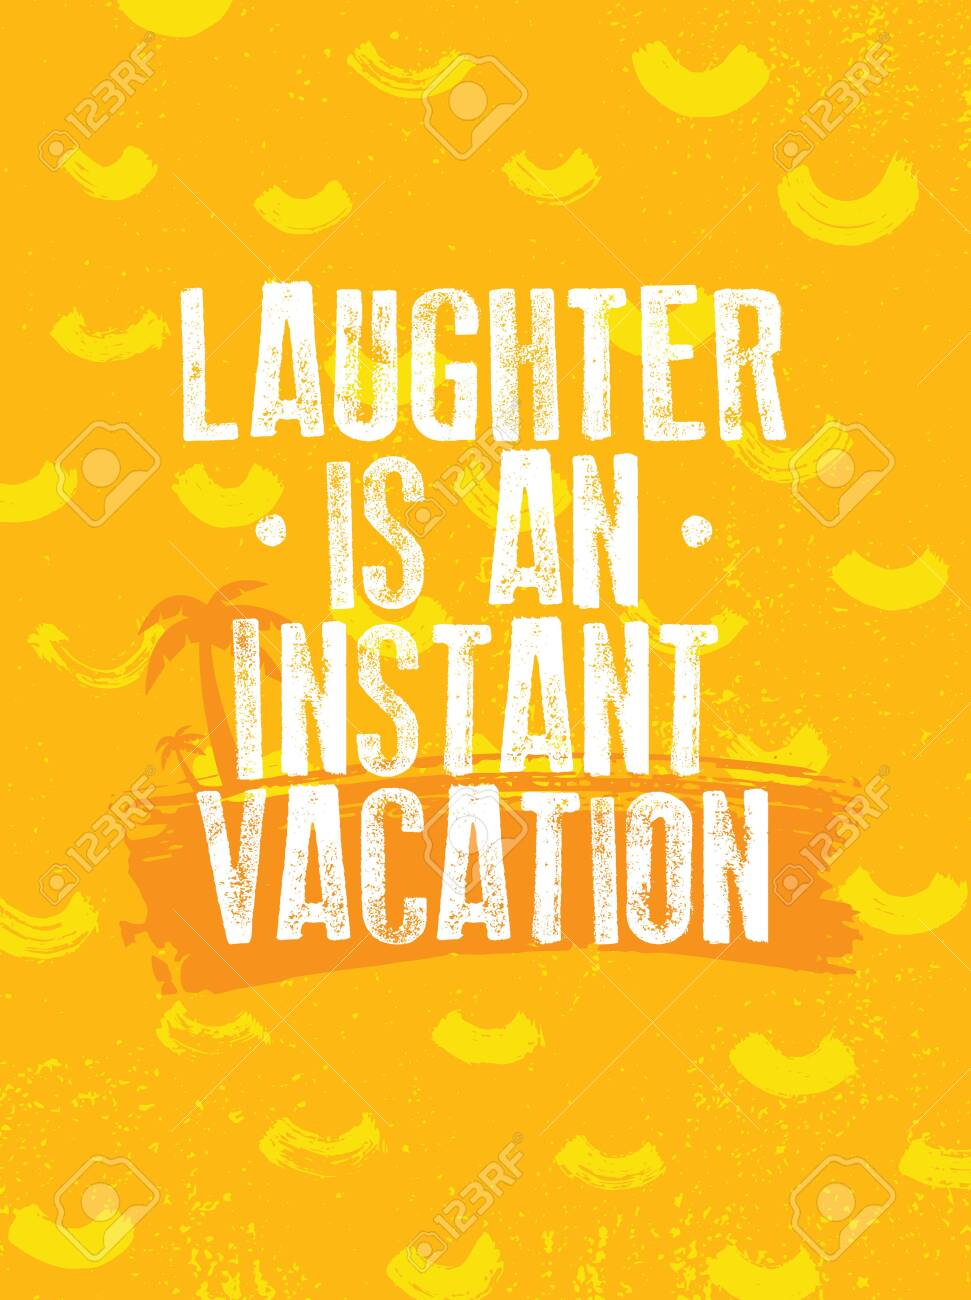 Laughter Is An Instant Vacation. Funny Bright Inspiration Motivation Quote Design. Always Smile - 141595874